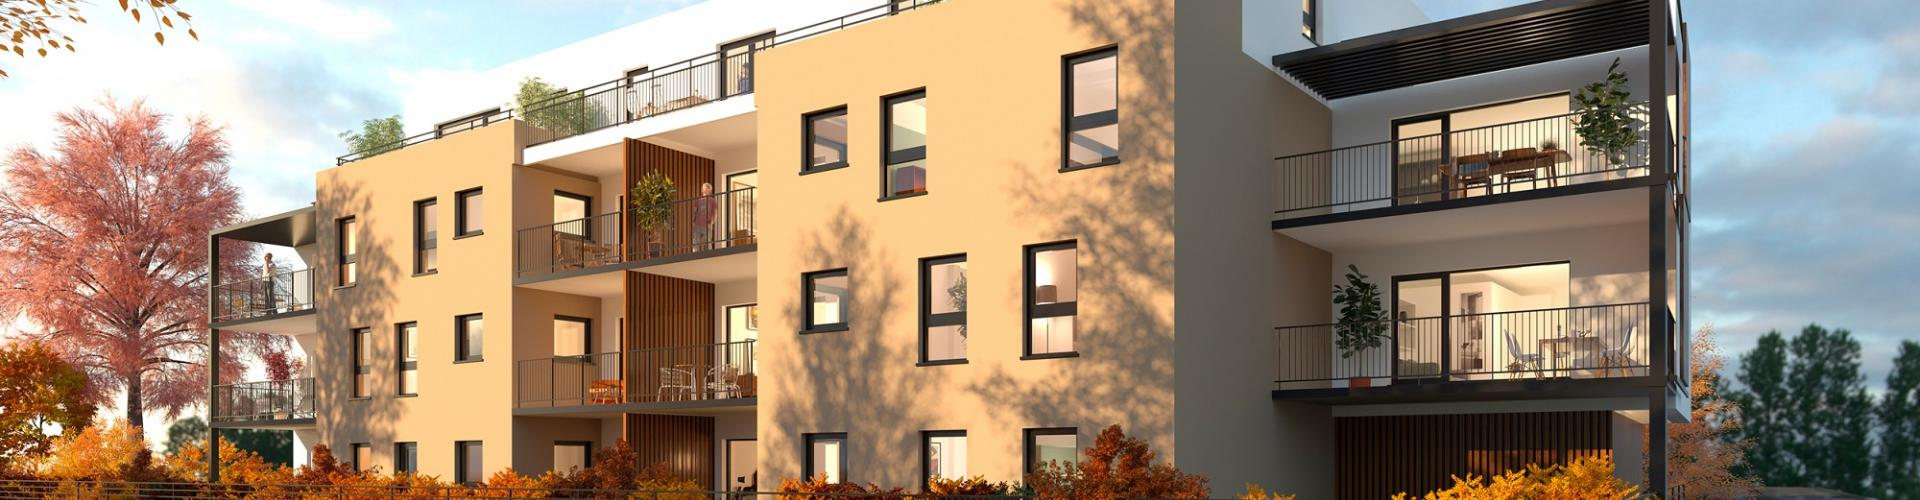 Programme immobilier neuf Strasbourg - Néhome